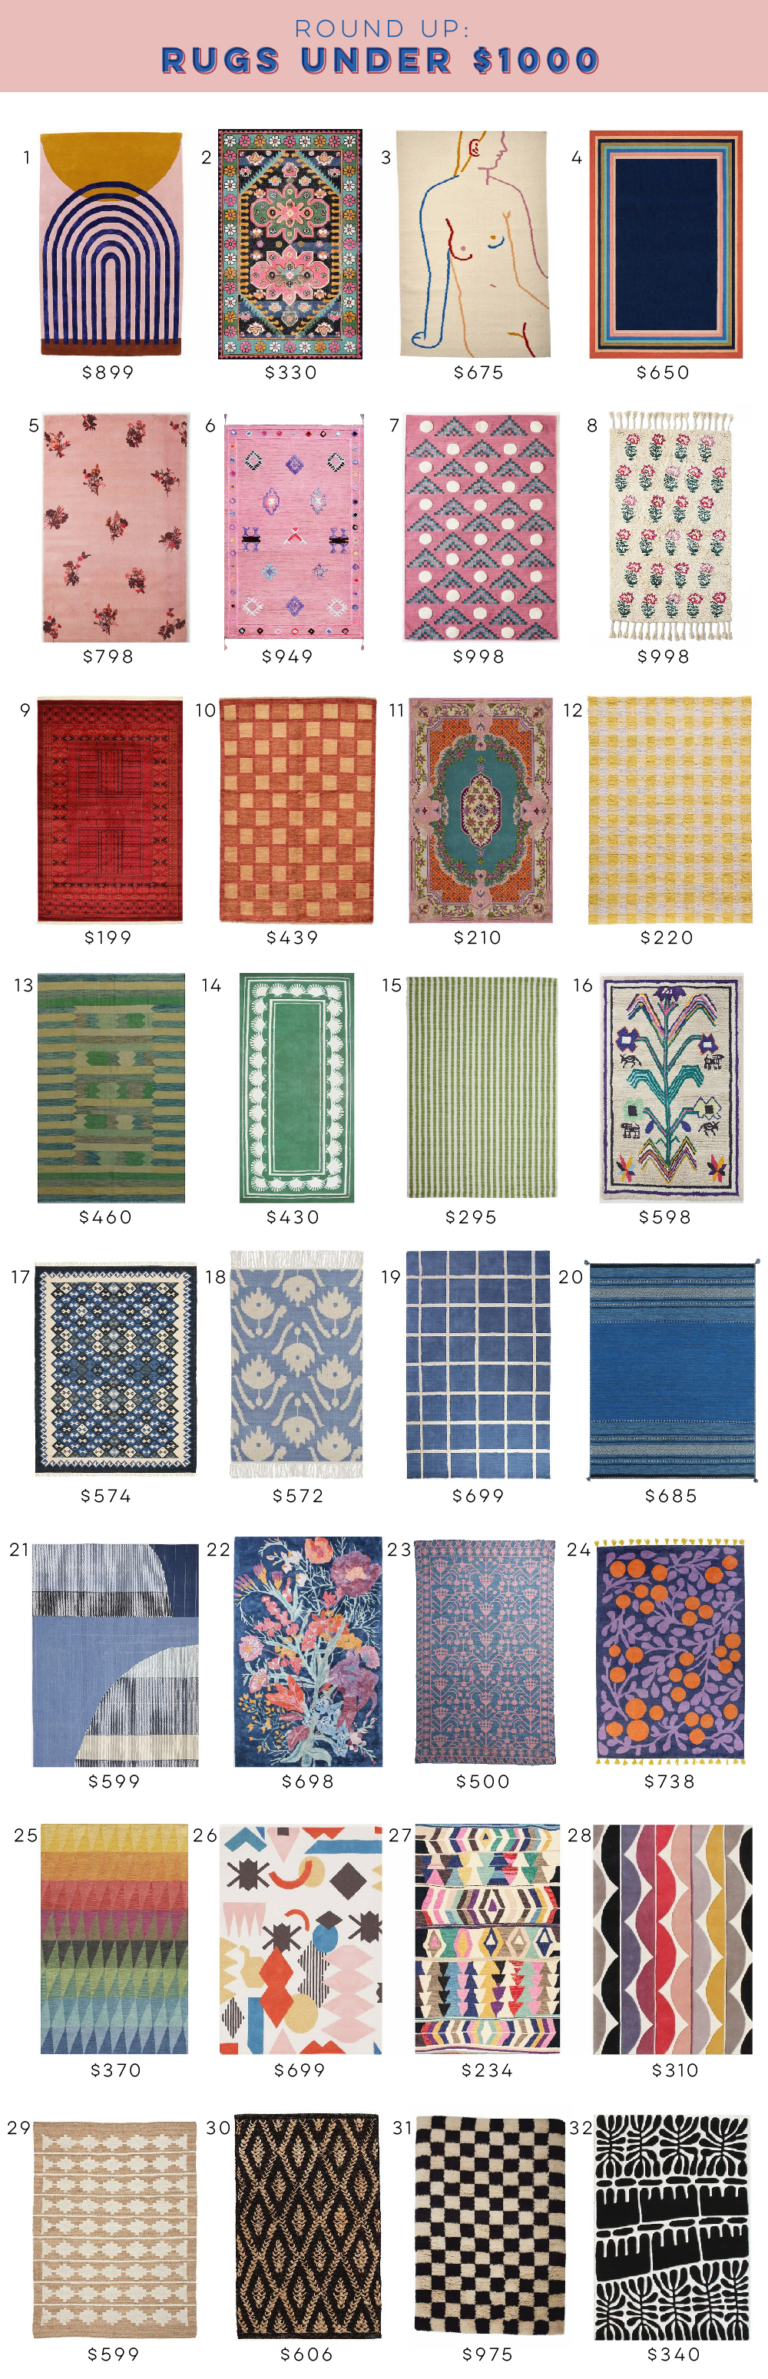 Affordable Rugs Under $1000